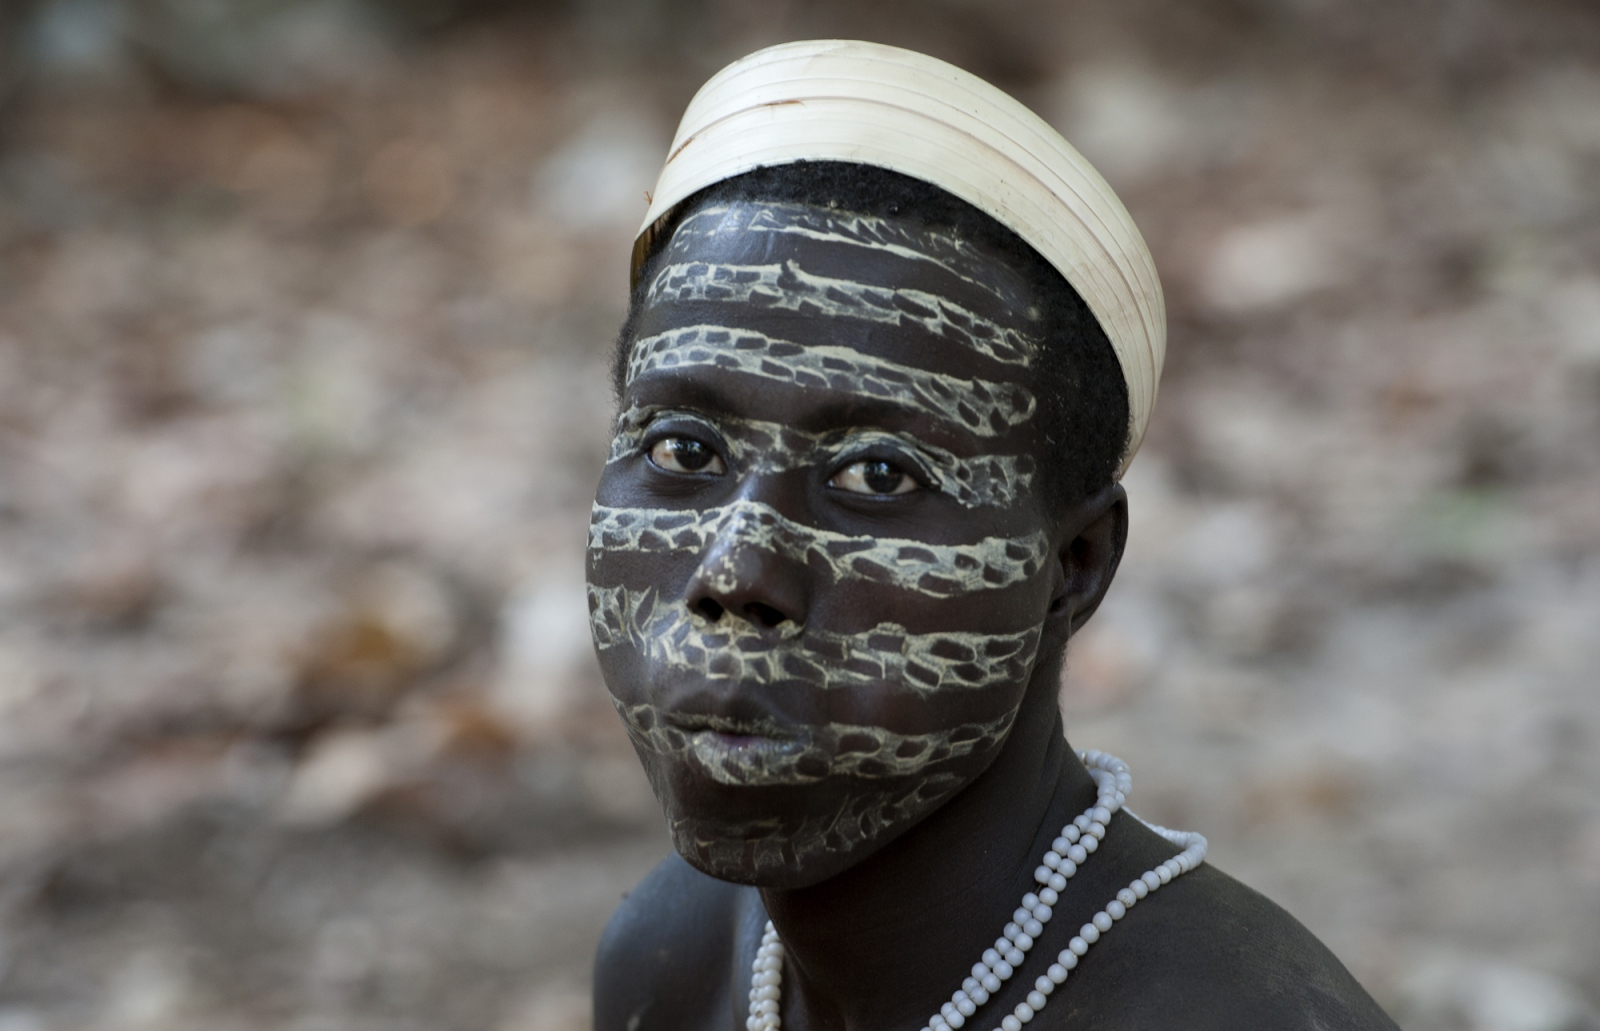 Art and Documentary Photography - Loading jarawa_beilvert_jarawa_man_make_up.jpg